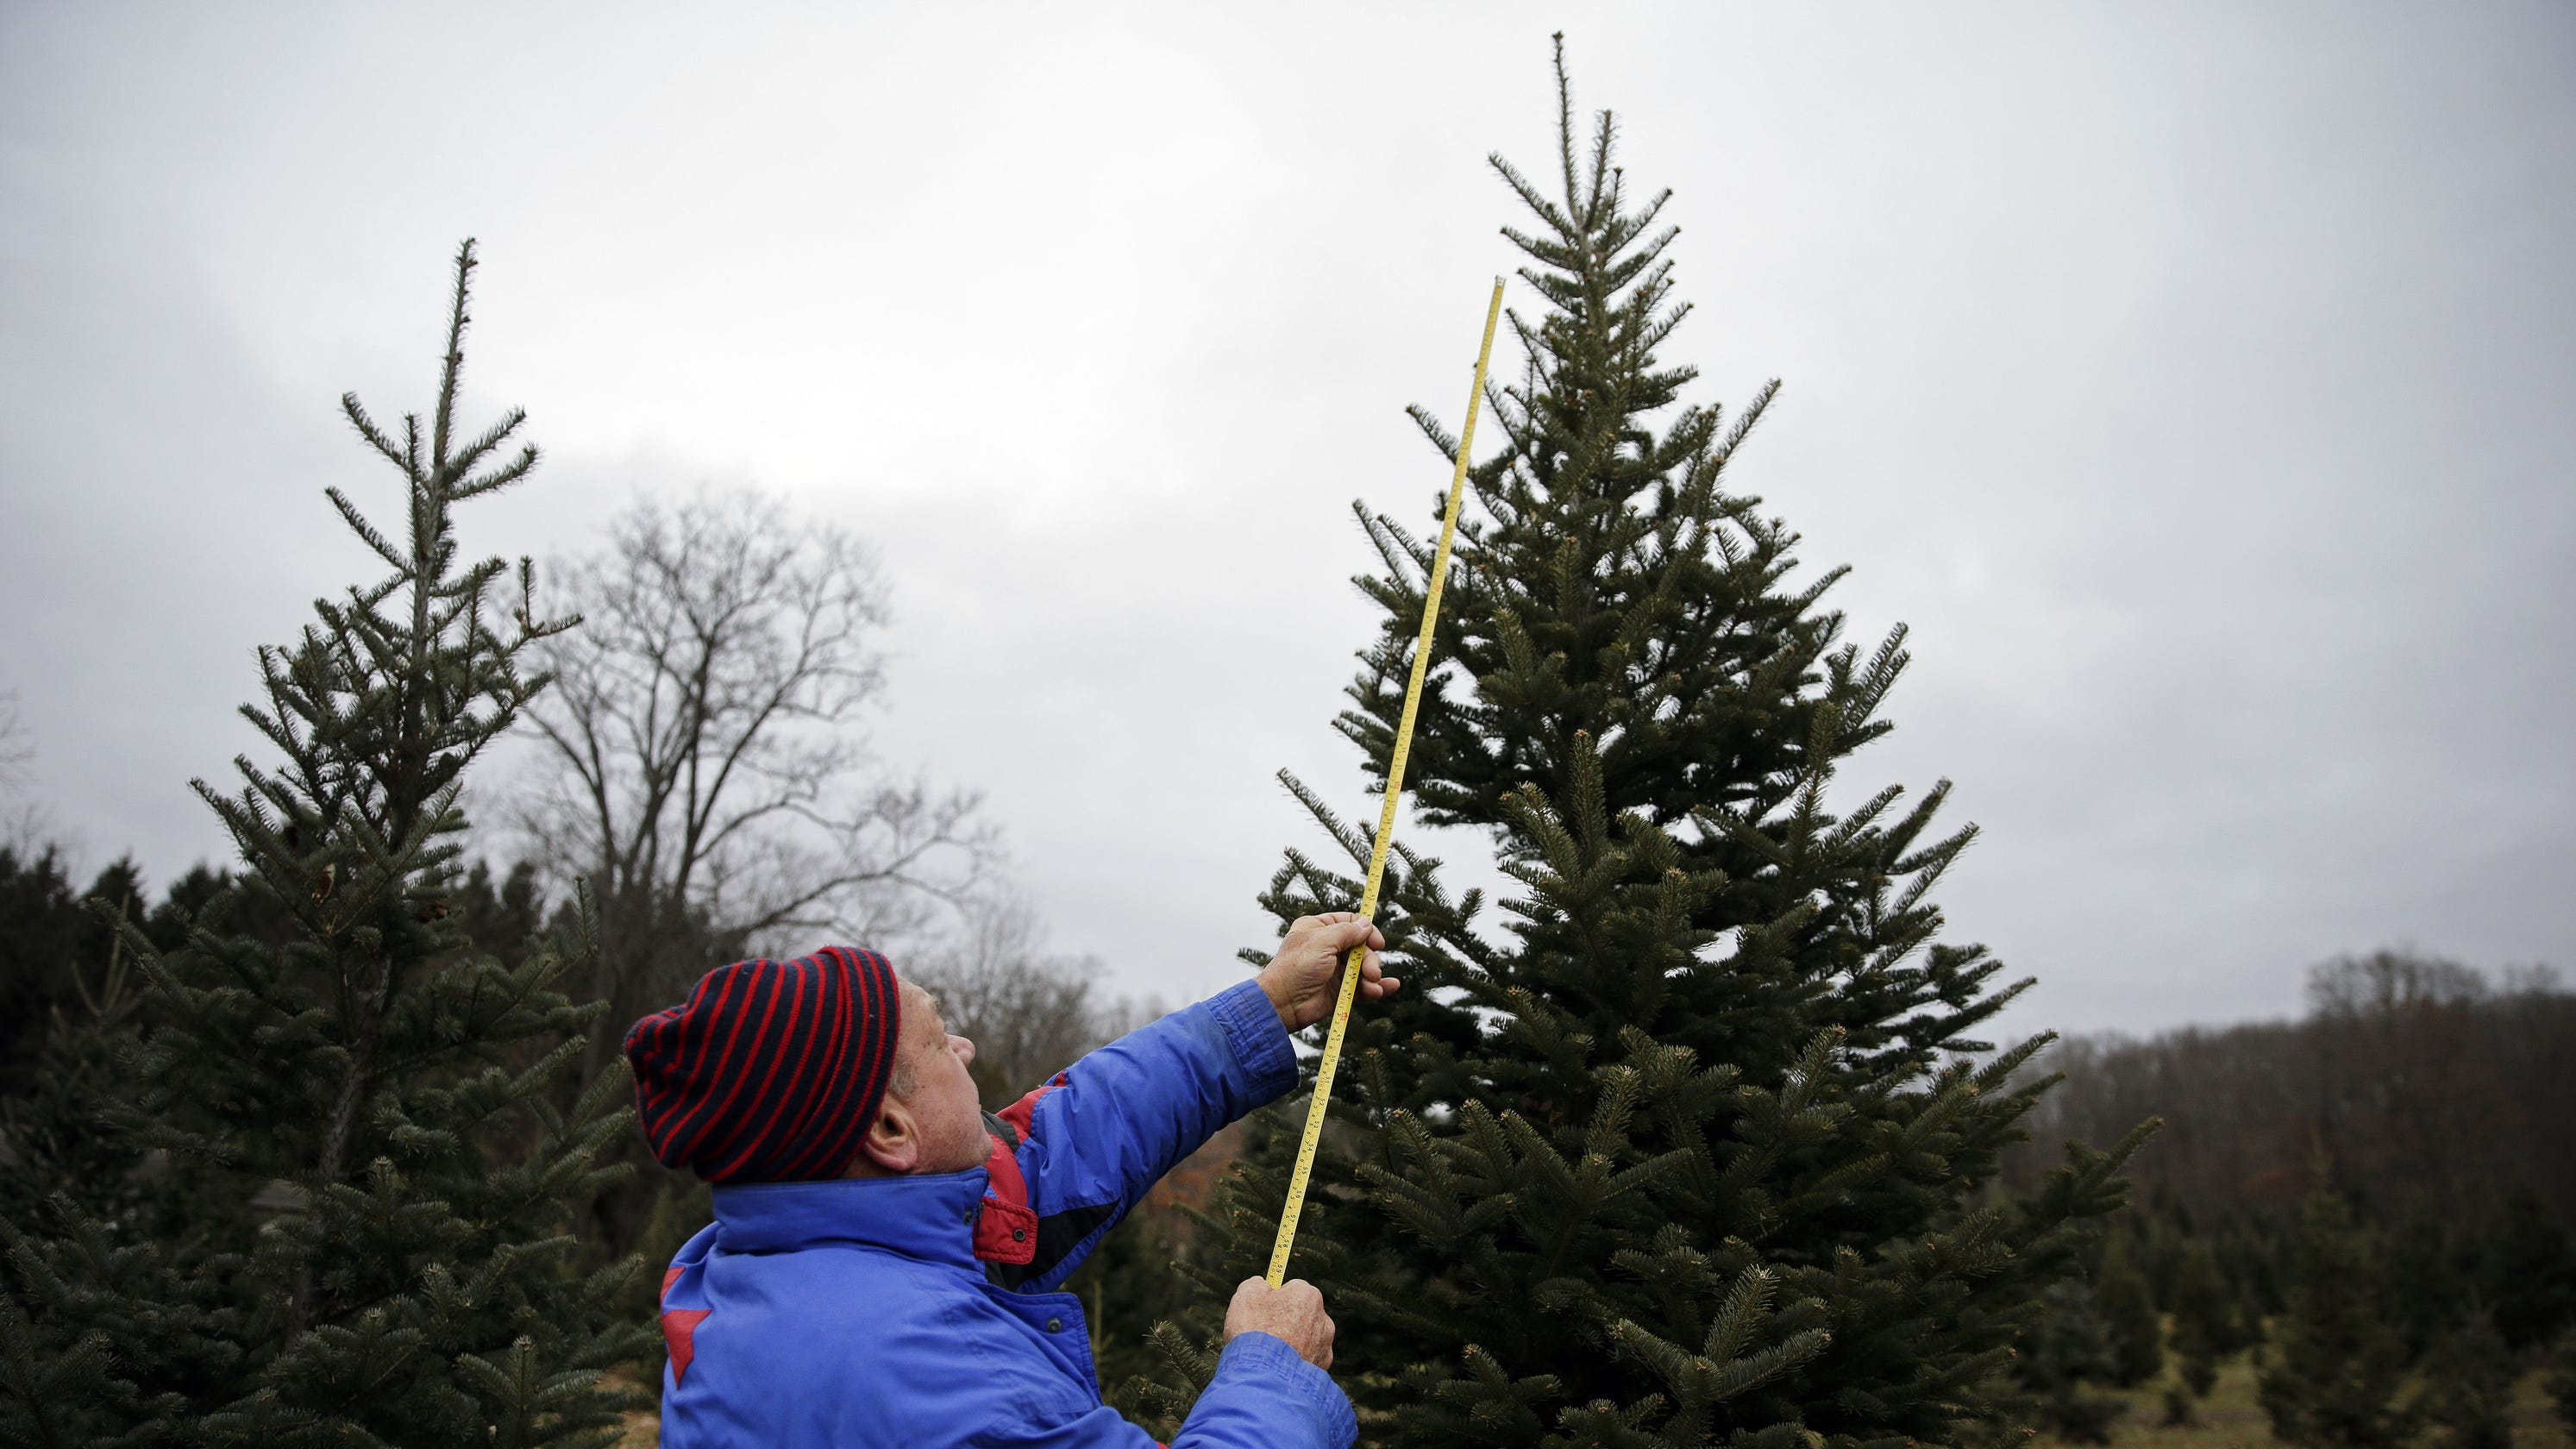 Appleton Christmas Trees: Where To Find Cut-your-own Fir